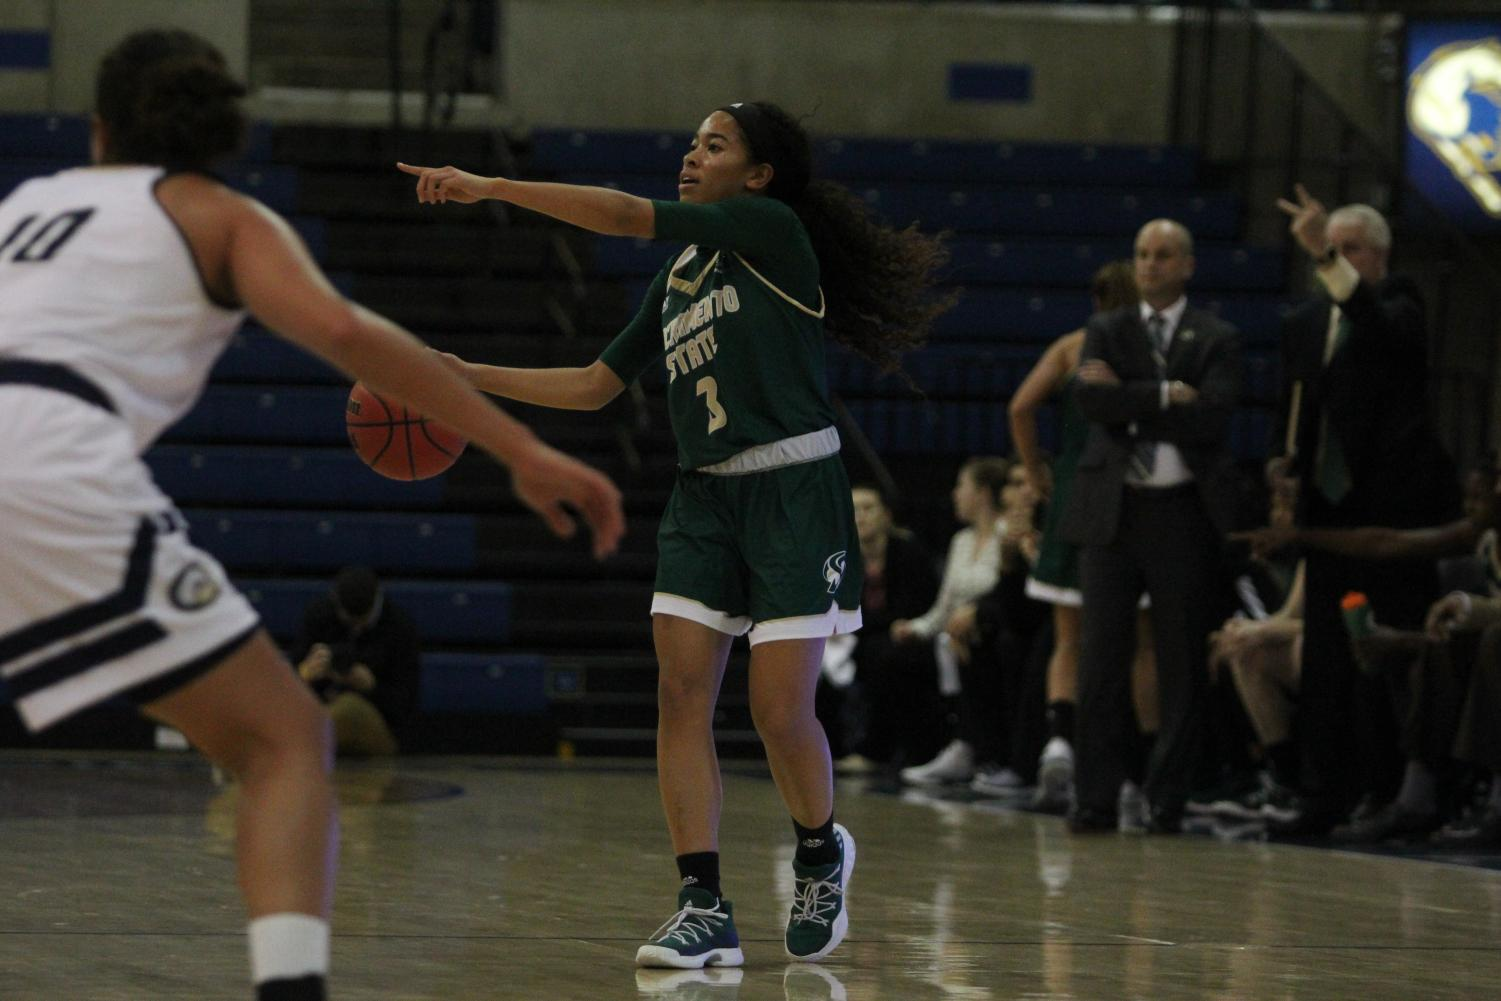 Sacramento State sophomore guard Tiara Scott directs her teammates in a 79-72 loss against UC Davis Thursday, Nov. 30 at The Pavilion in Davis.